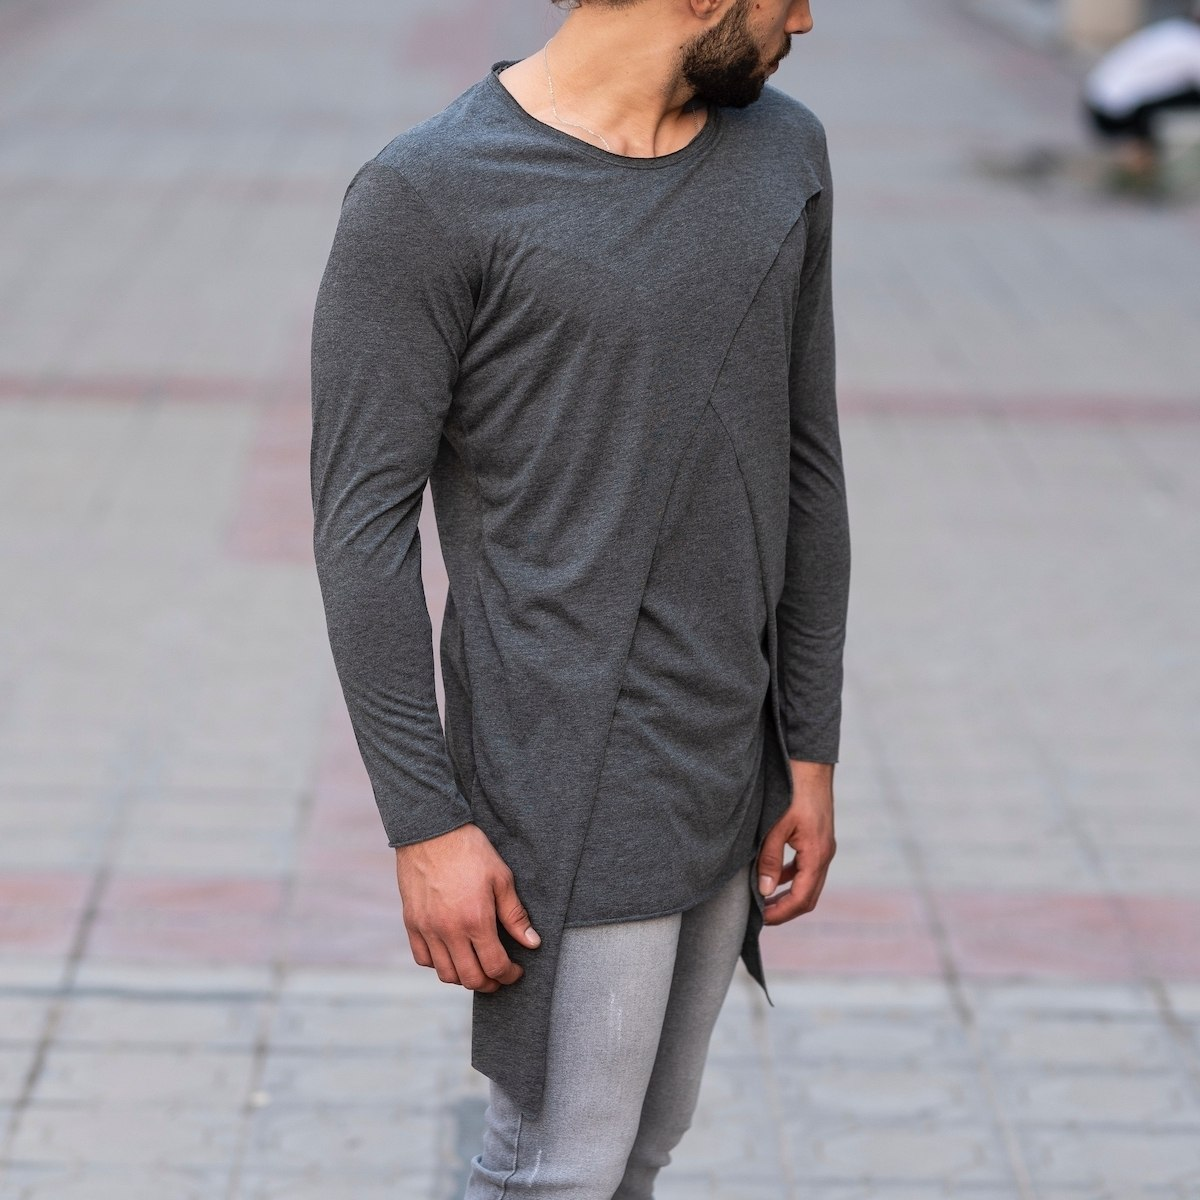 V-Layered Sweatshirt In Gray Mv Premium Brand - 2